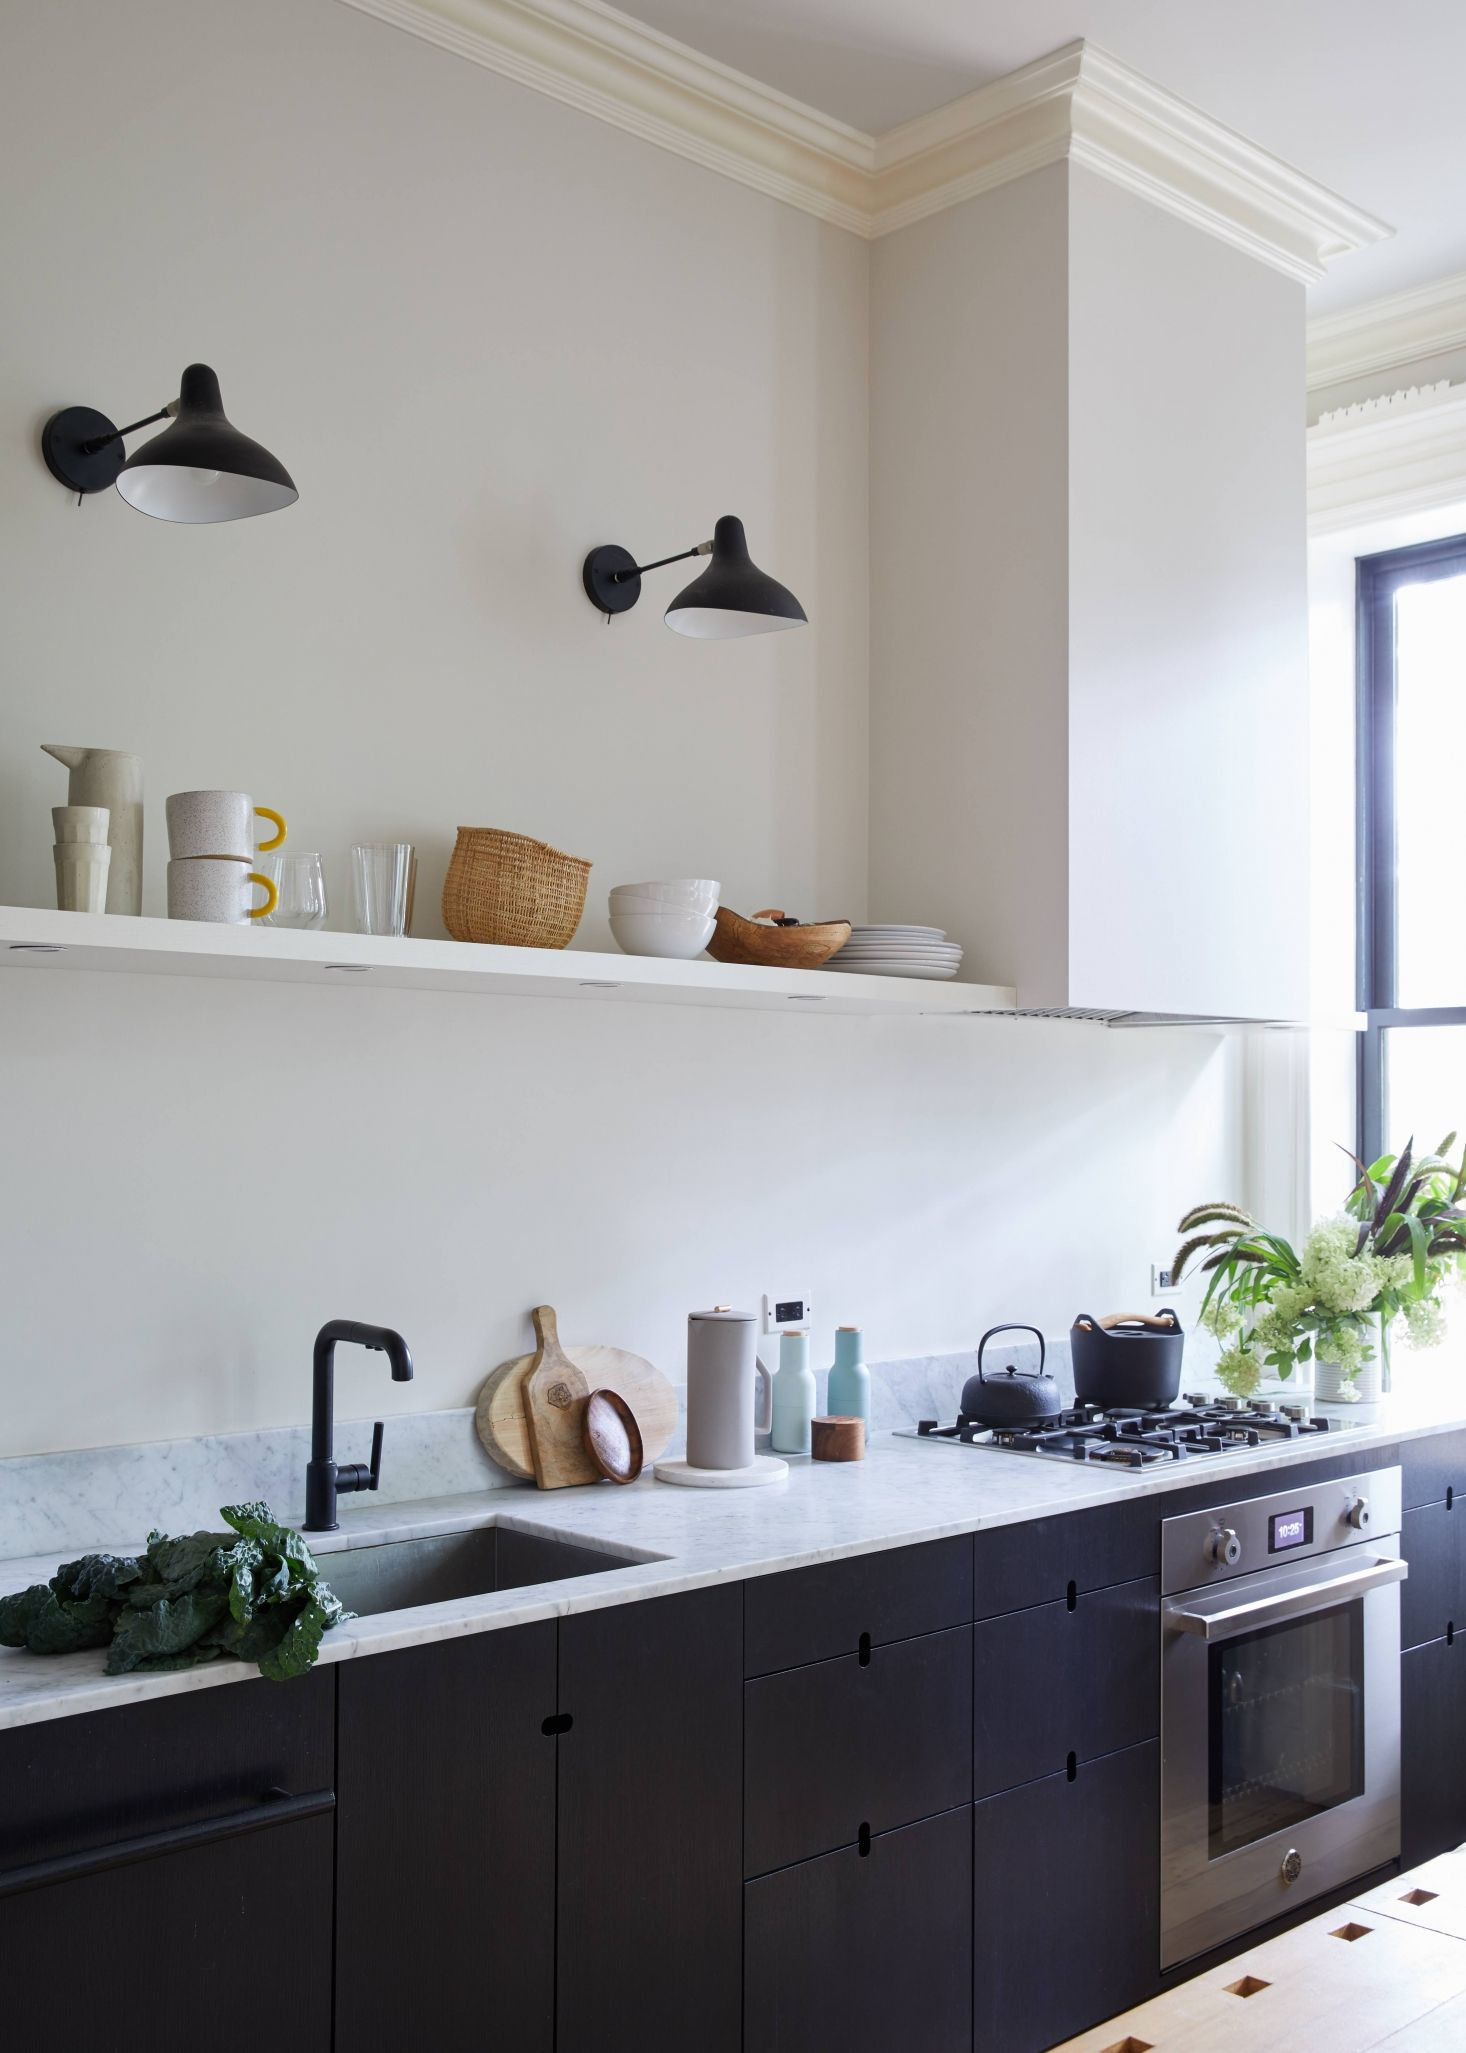 Small Streamlined Brooklyn Kitchen With Black Cabinets By Architect Jess Thomas Simple Kitchen Design Modern Kitchen Design Kitchen Interior Inspiration